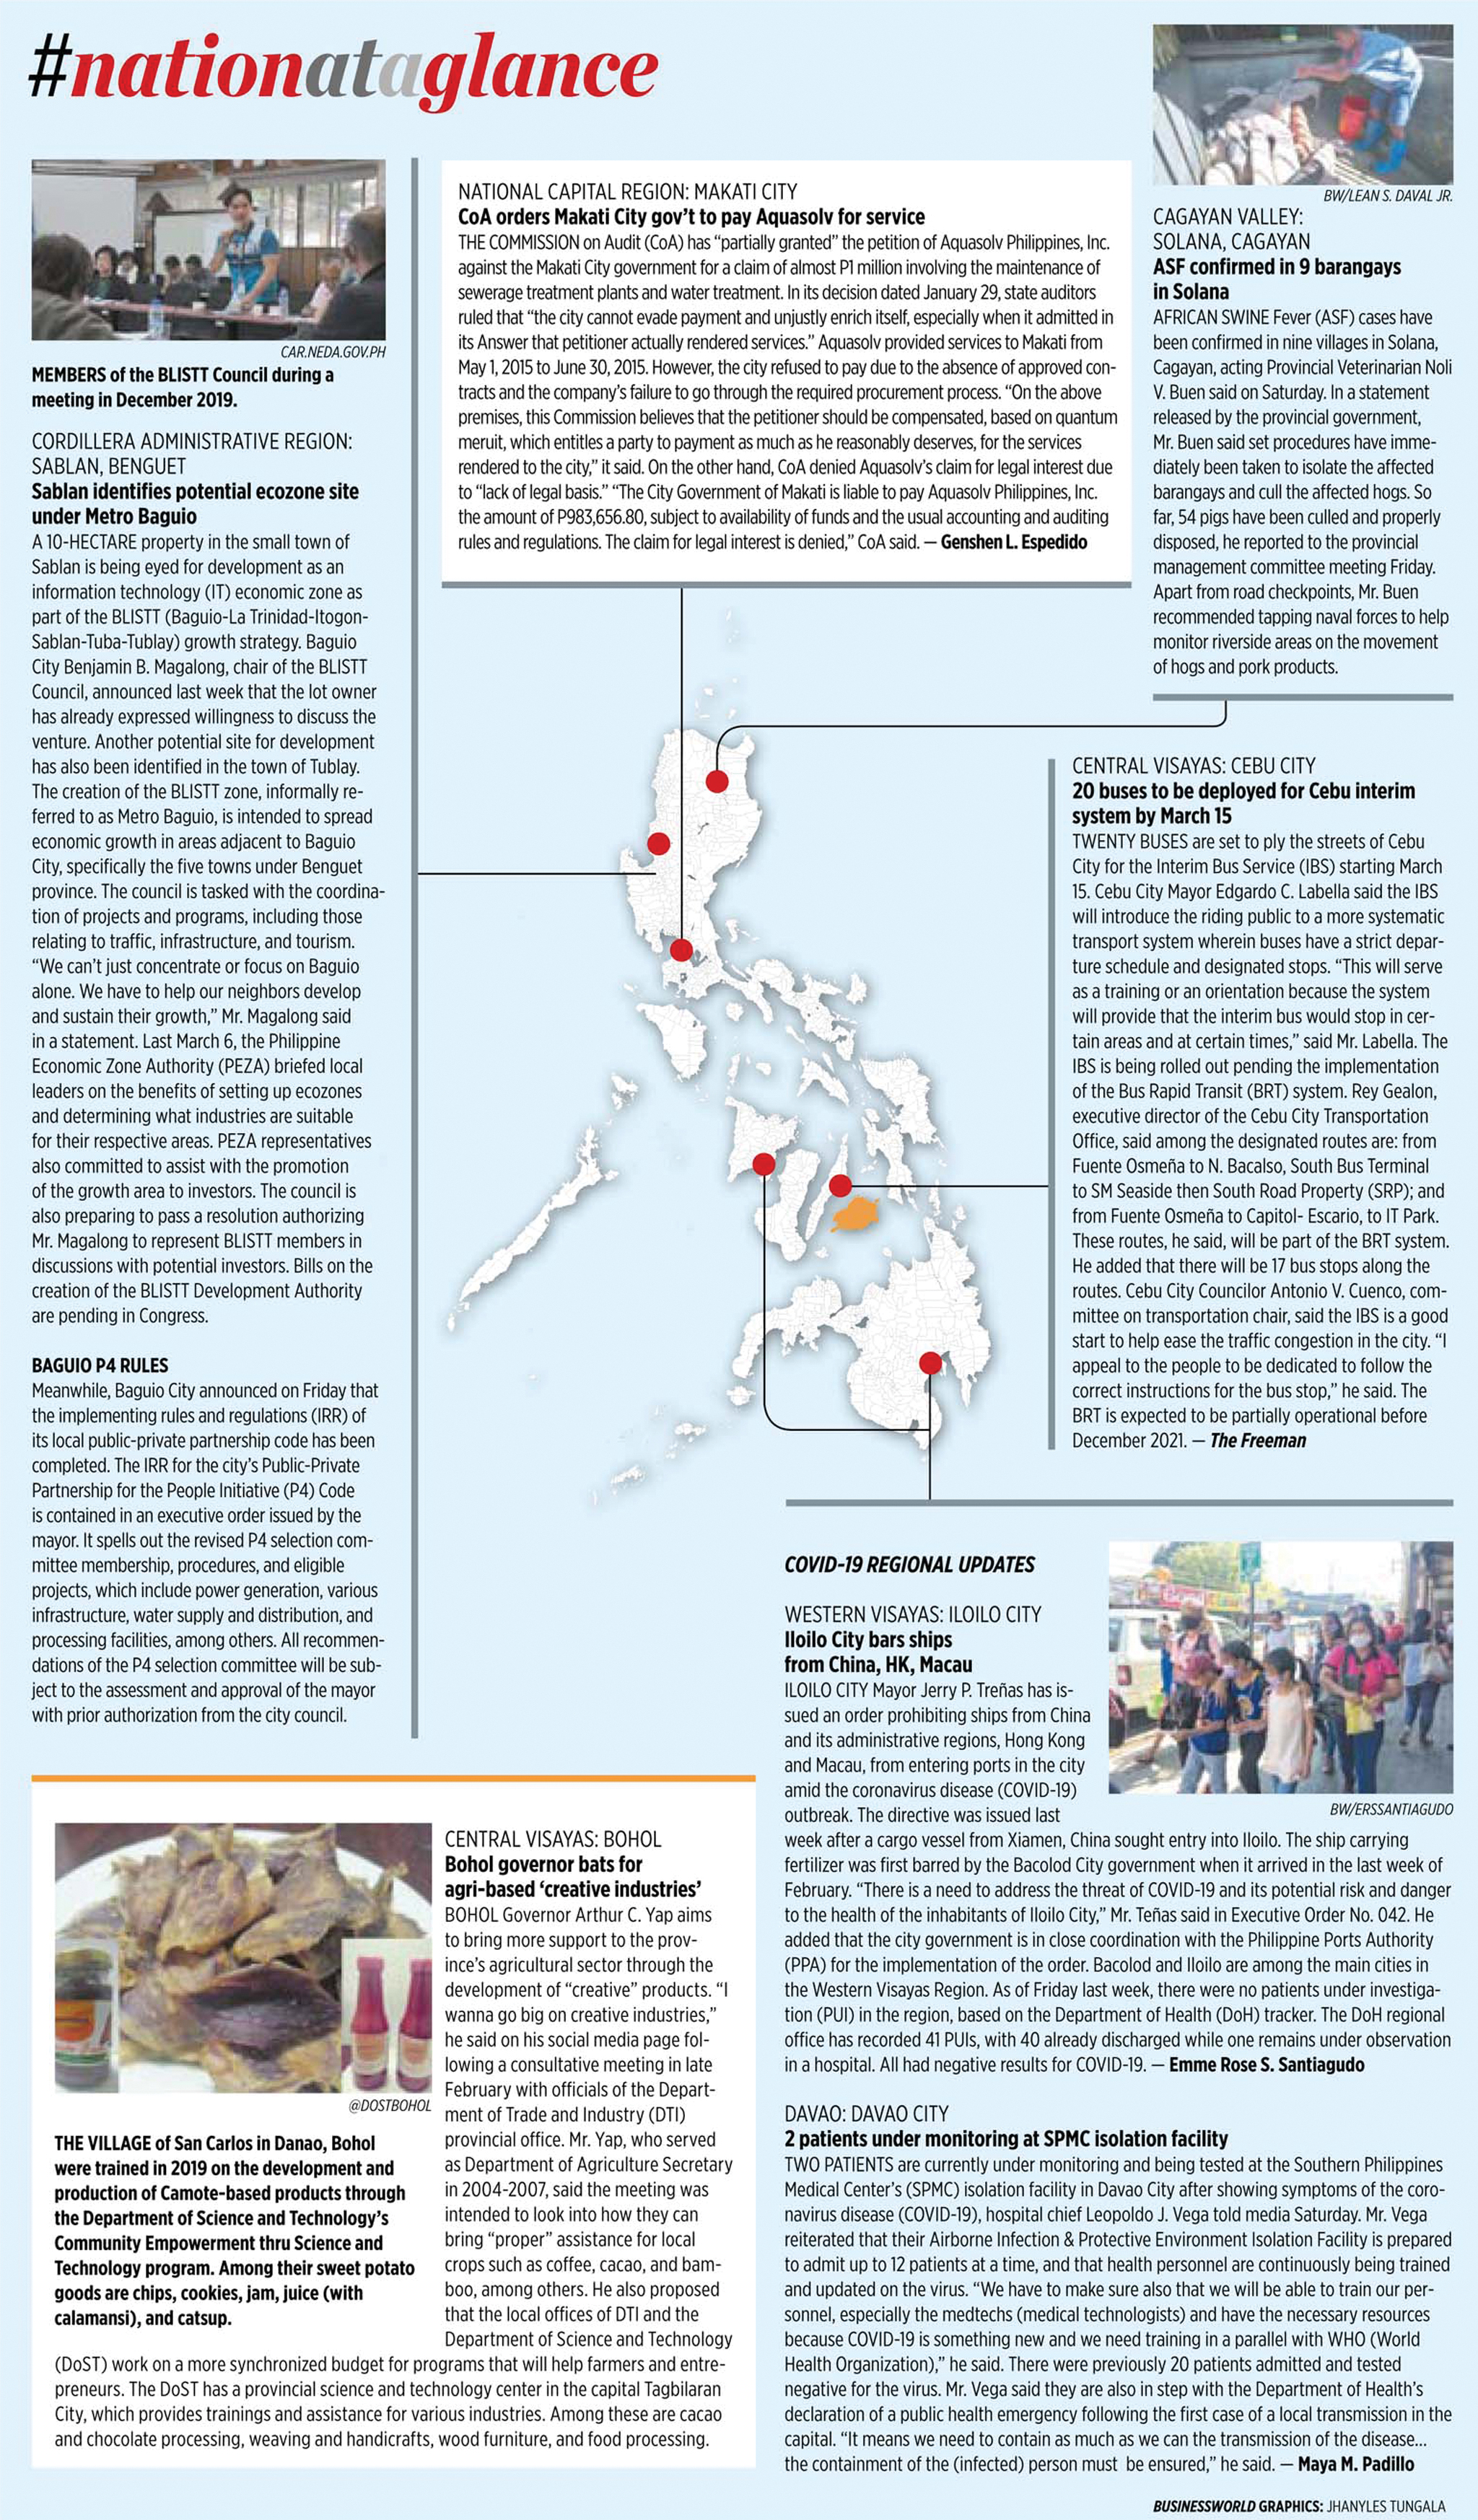 Nation at a Glance — (03/09/20)